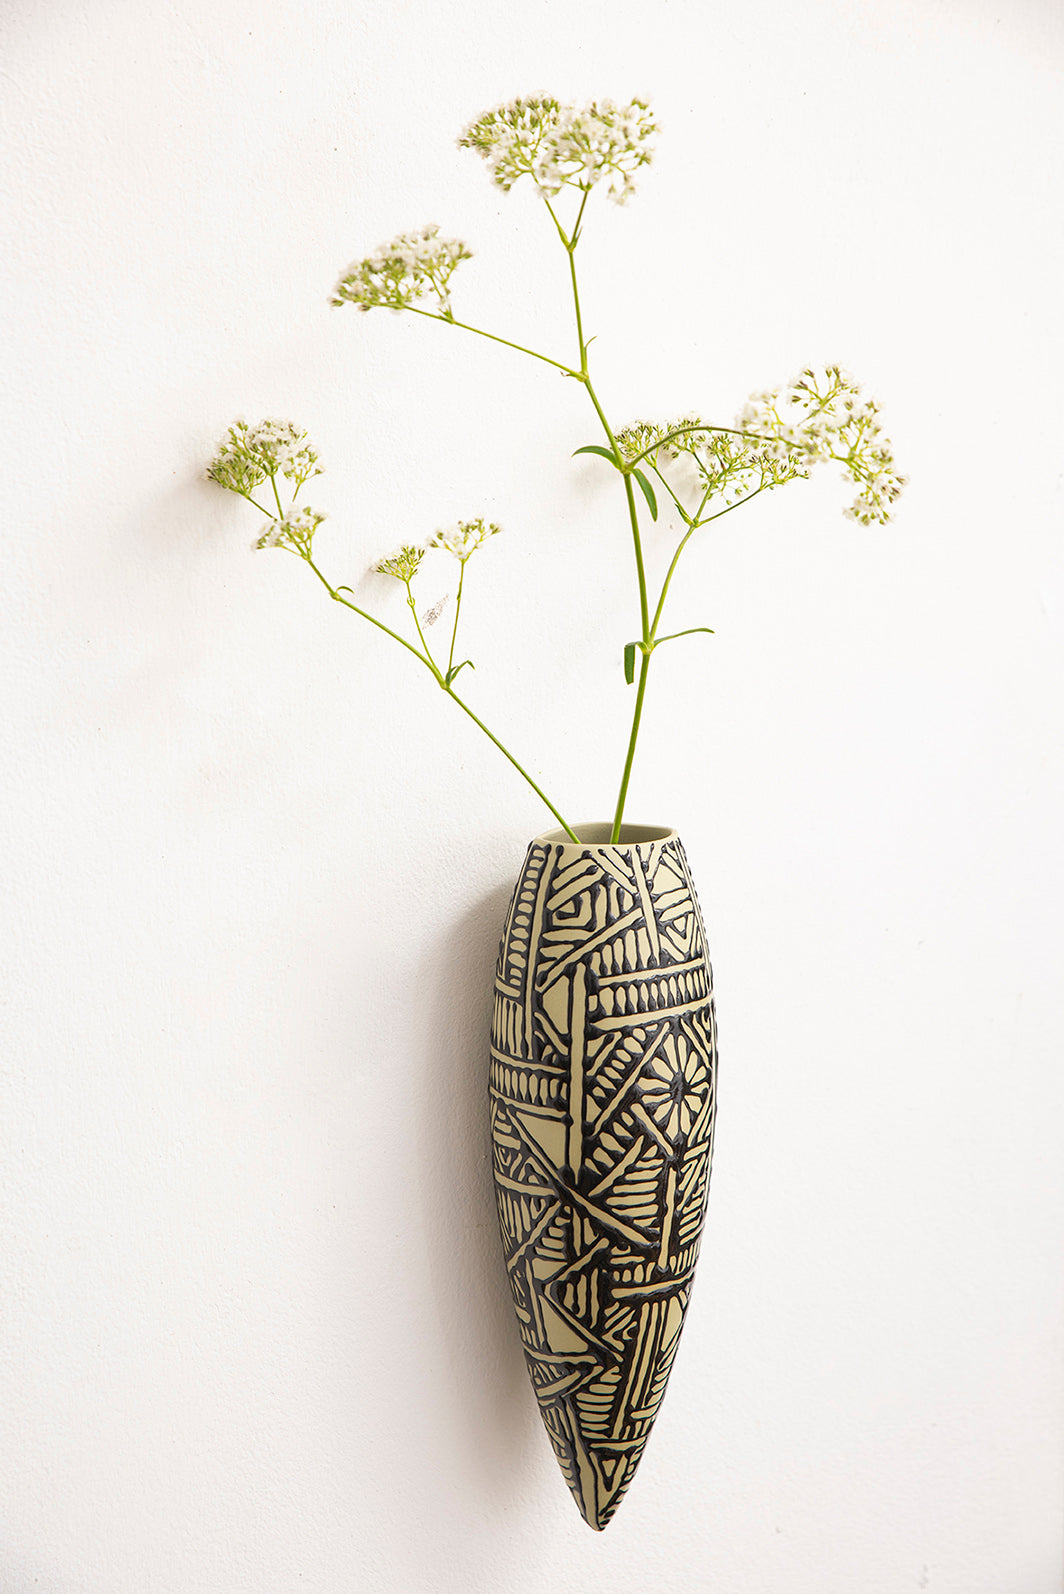 Wall hanging vase | Avocado green with oriental black